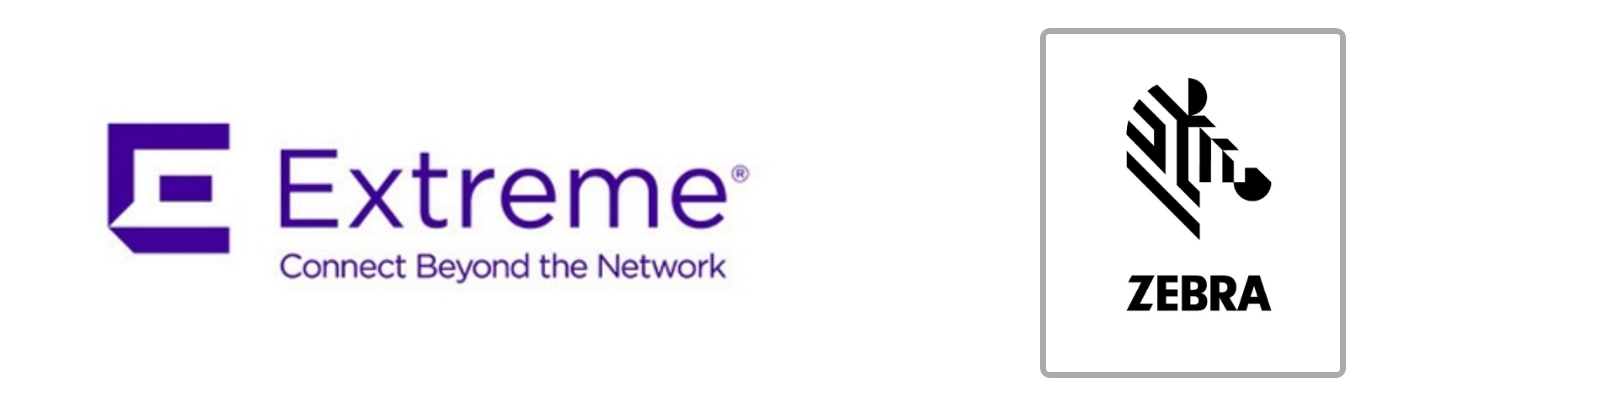 Extreme Networks Acquires Zebra S Wlan